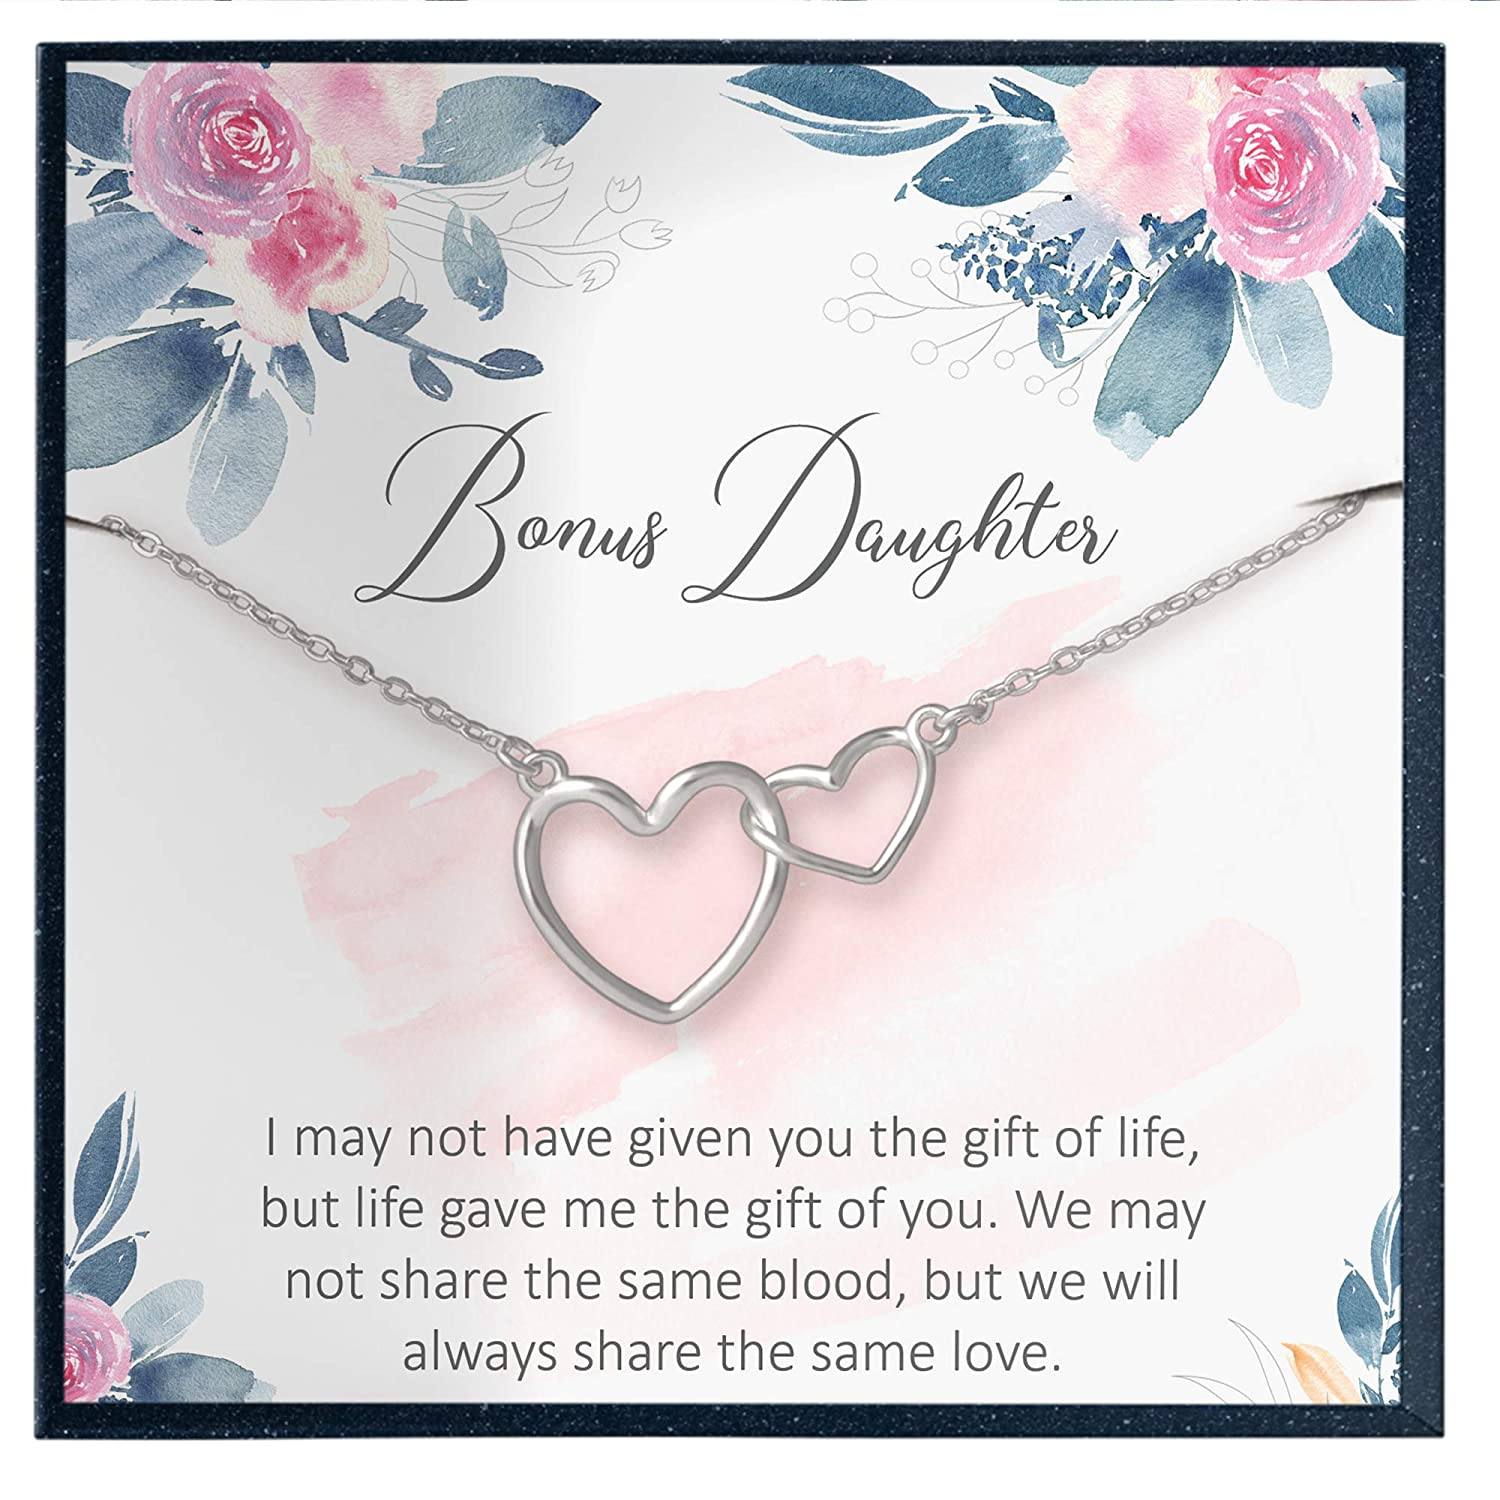 Bonus Daughter Necklace Step Daughter Gifts Muse Infinite Stepdaughter Jewelry Gifts Stepdaughter Quote Card Unbiological Daughter